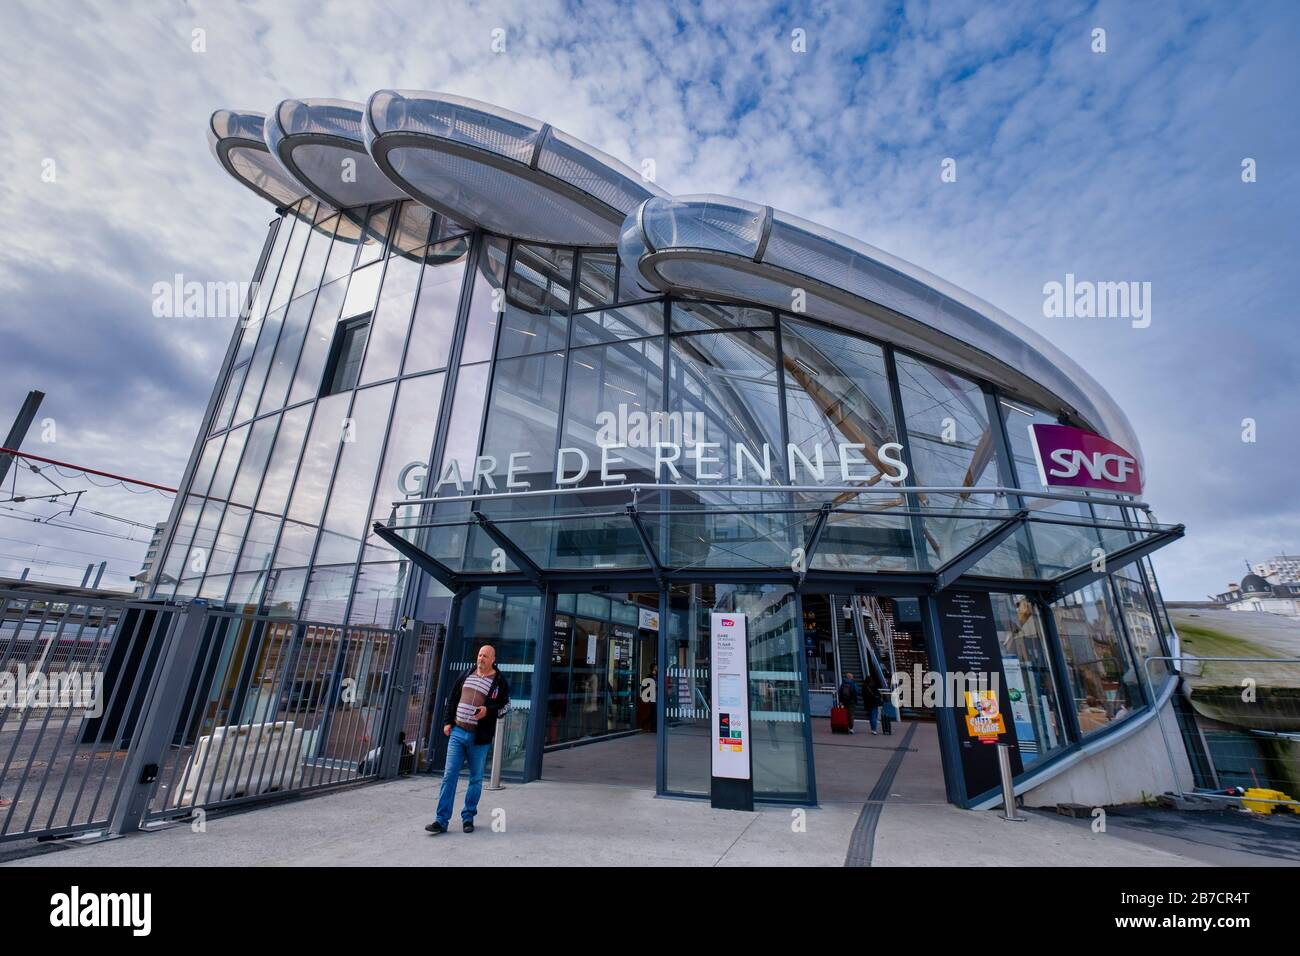 Gare De Rennes Sncf Train Station In Rennes France Europe Stock Photo Alamy